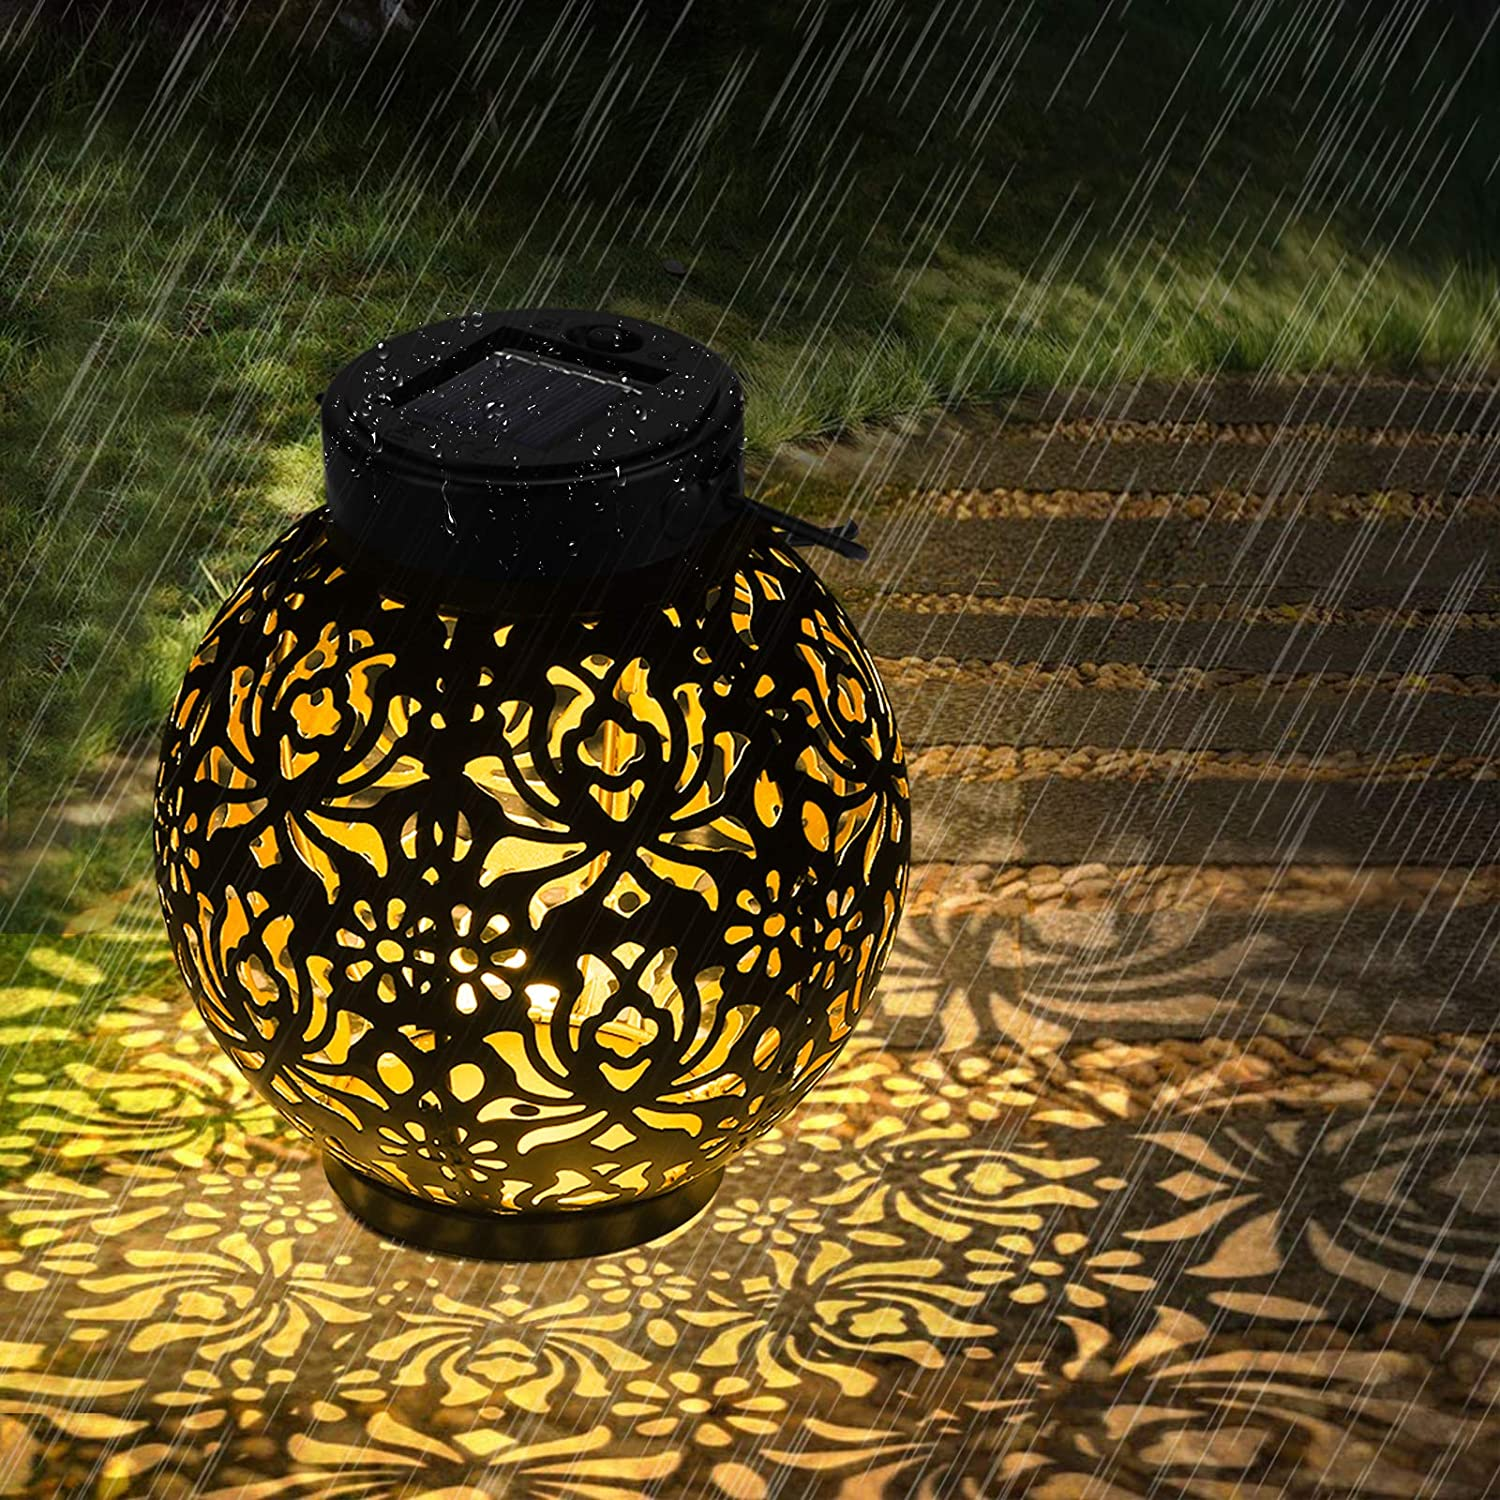 LED Solar Lights Outdoor, OOWOLF Landscaping Lights Garden Decor, Backyard Lights Outdoor with IP44 Waterproof LED Table Lamp Decorative for Terrace, Backyard, Front Door, Path, Street, Lawn